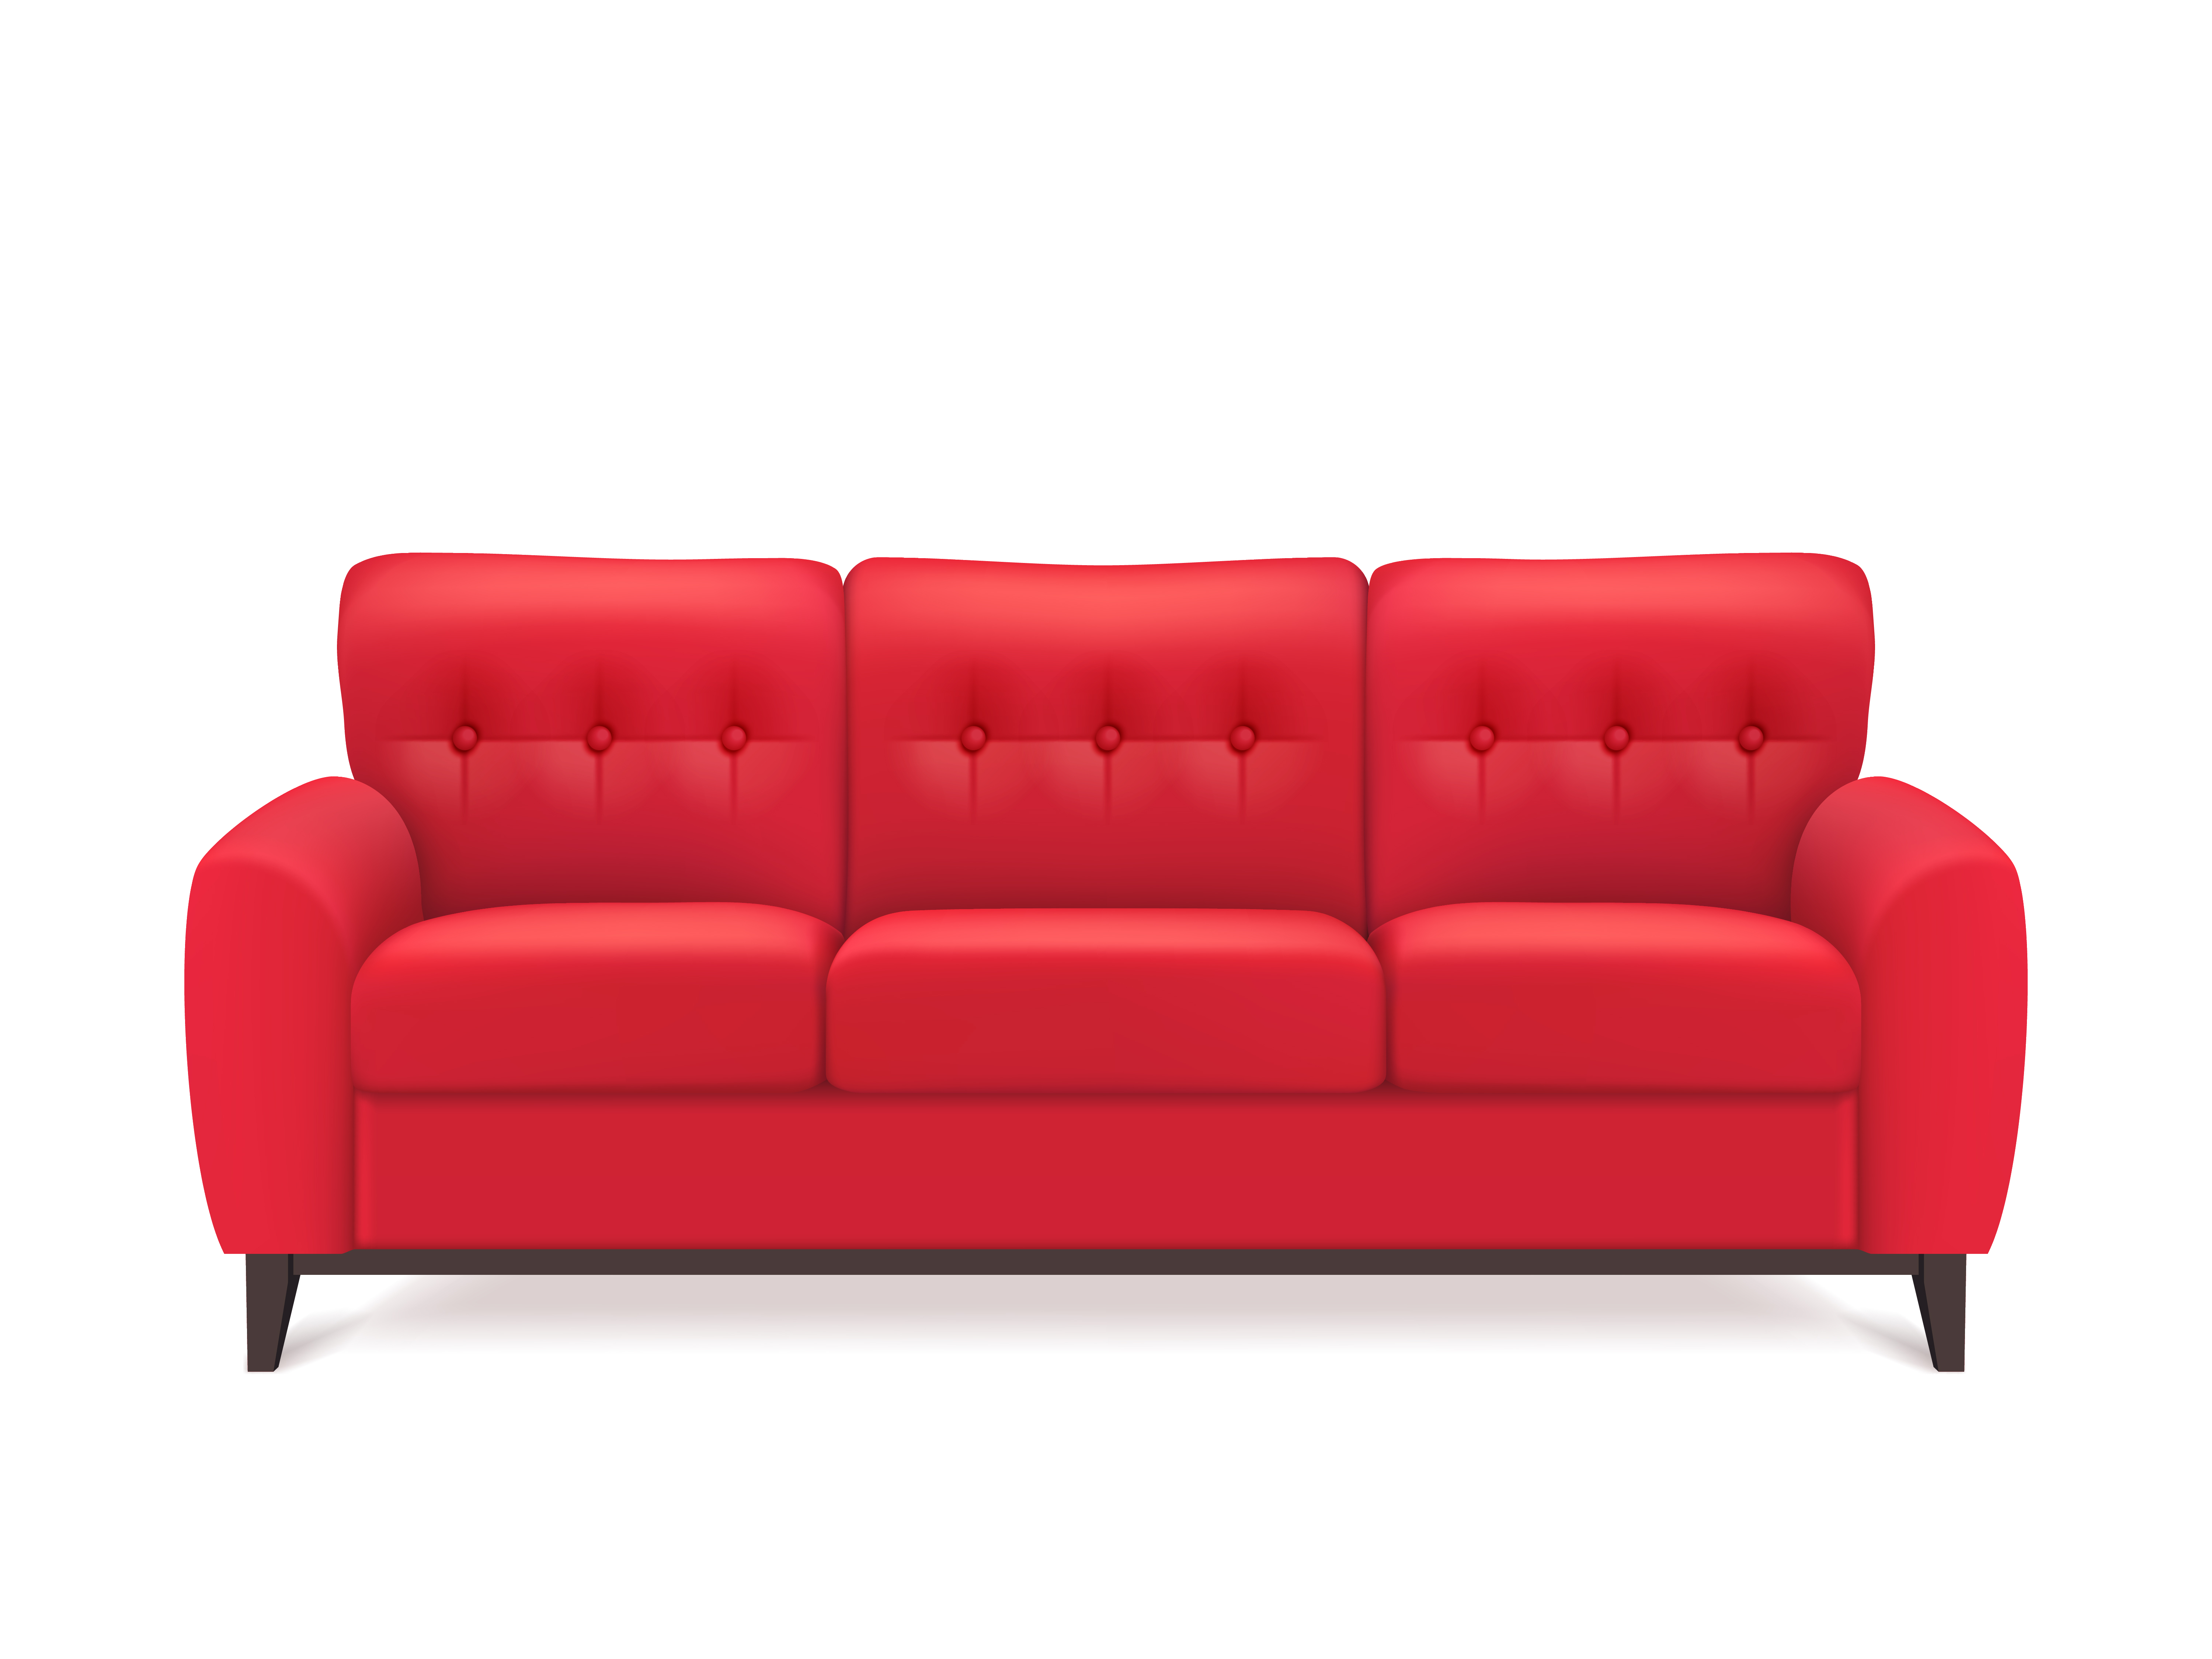 Red Leather Sofa Realistic Illustration Download Free